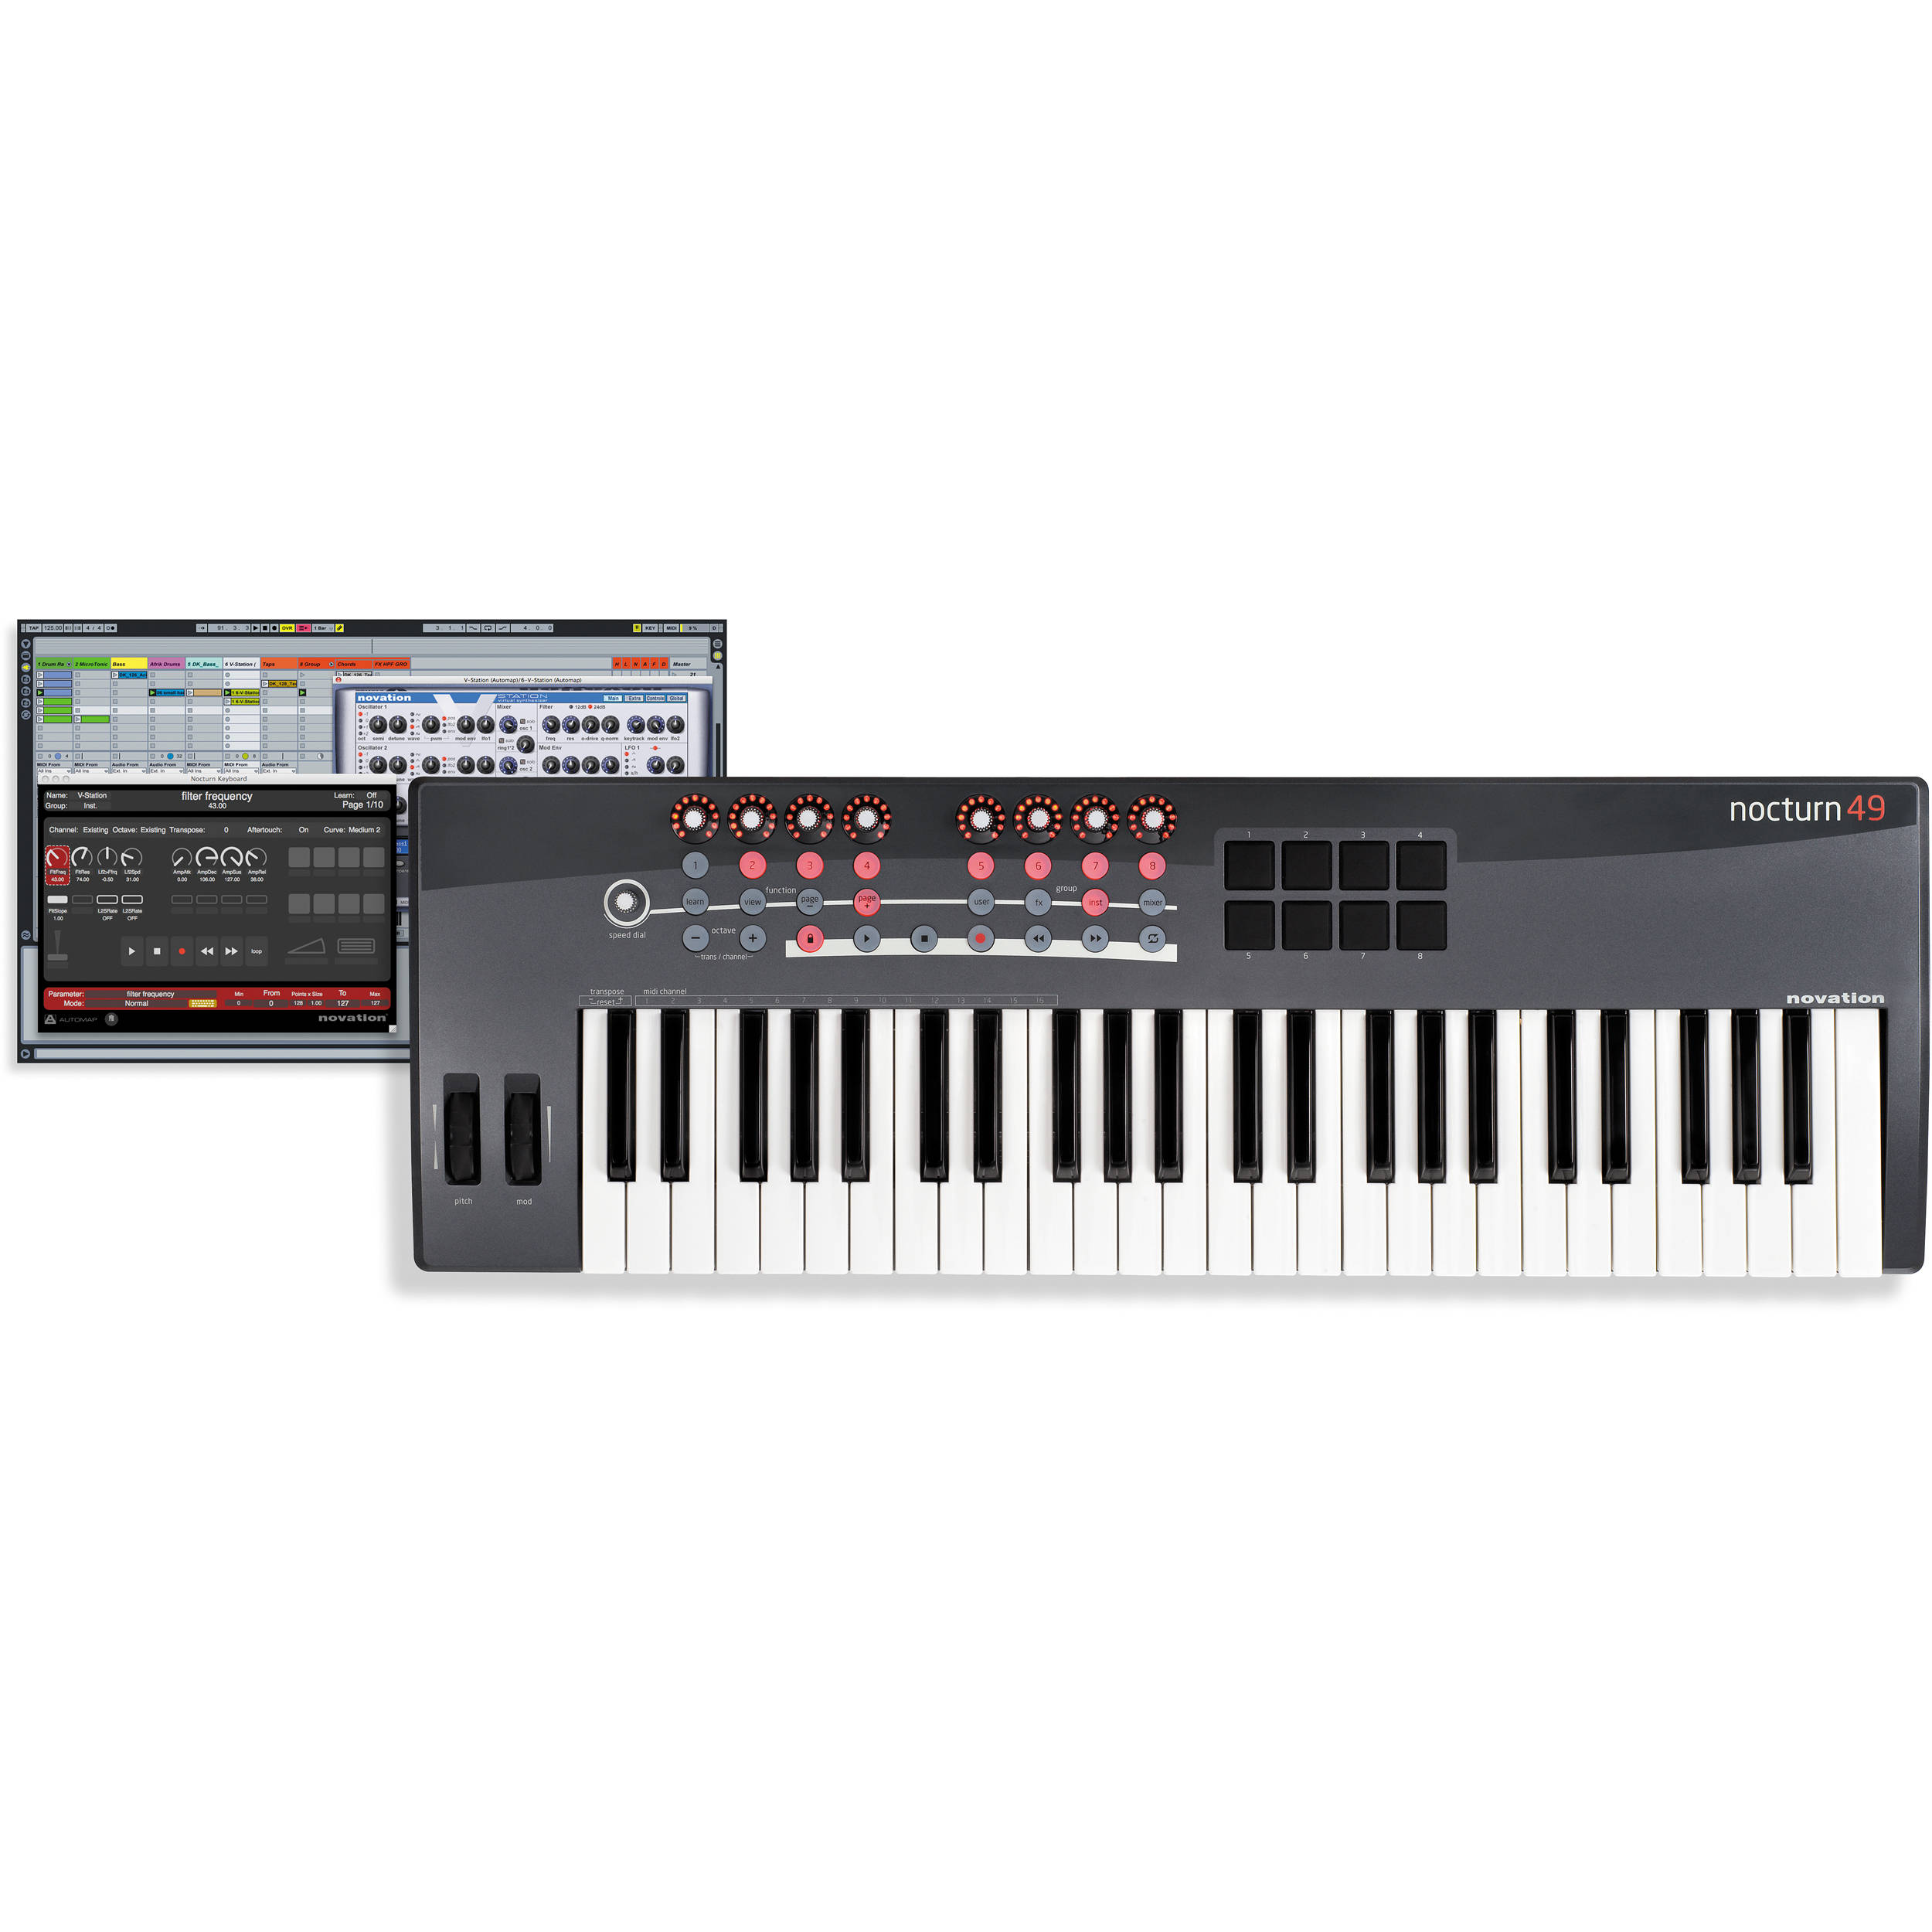 novation nocturn 49 usb midi controller keyboard nocturn 49 b h. Black Bedroom Furniture Sets. Home Design Ideas